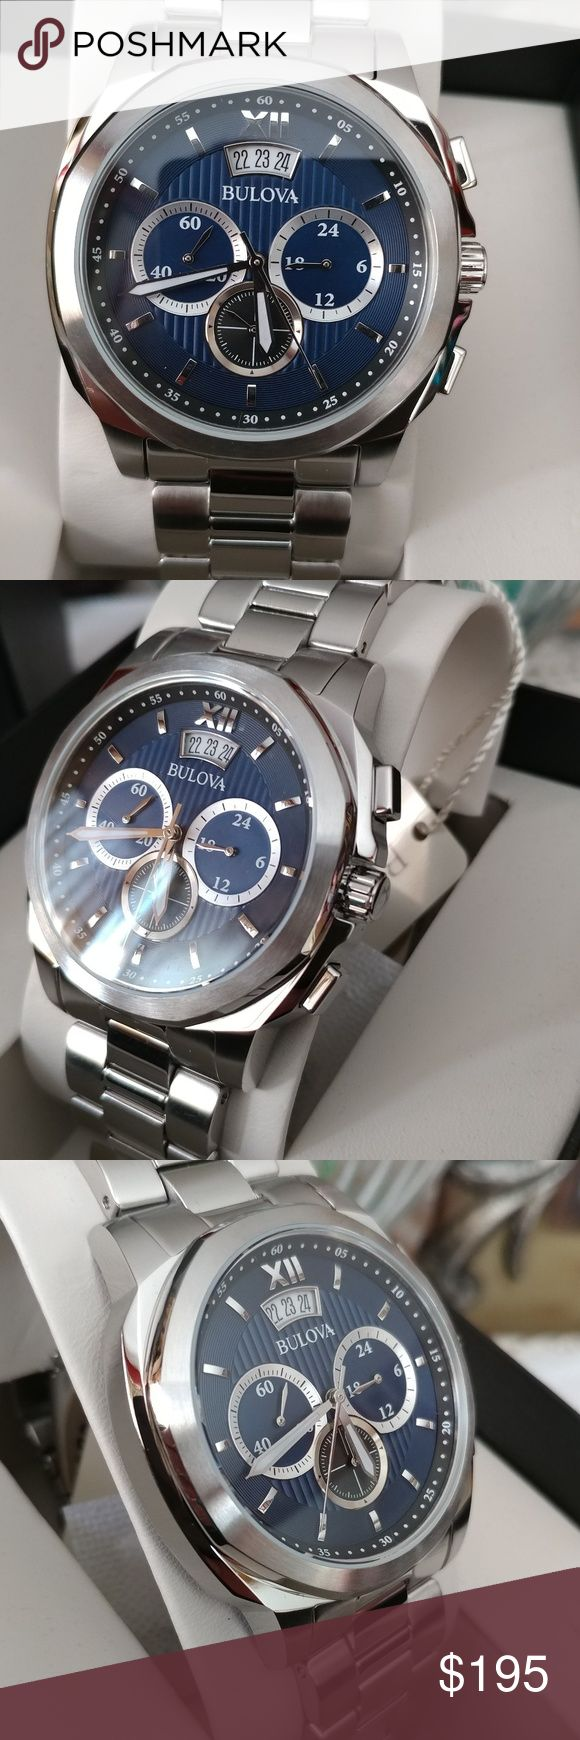 New Bulova Mens Chronograph New Stainless Steel Chronograph Quartz Comes with box and manual Accessories Watches